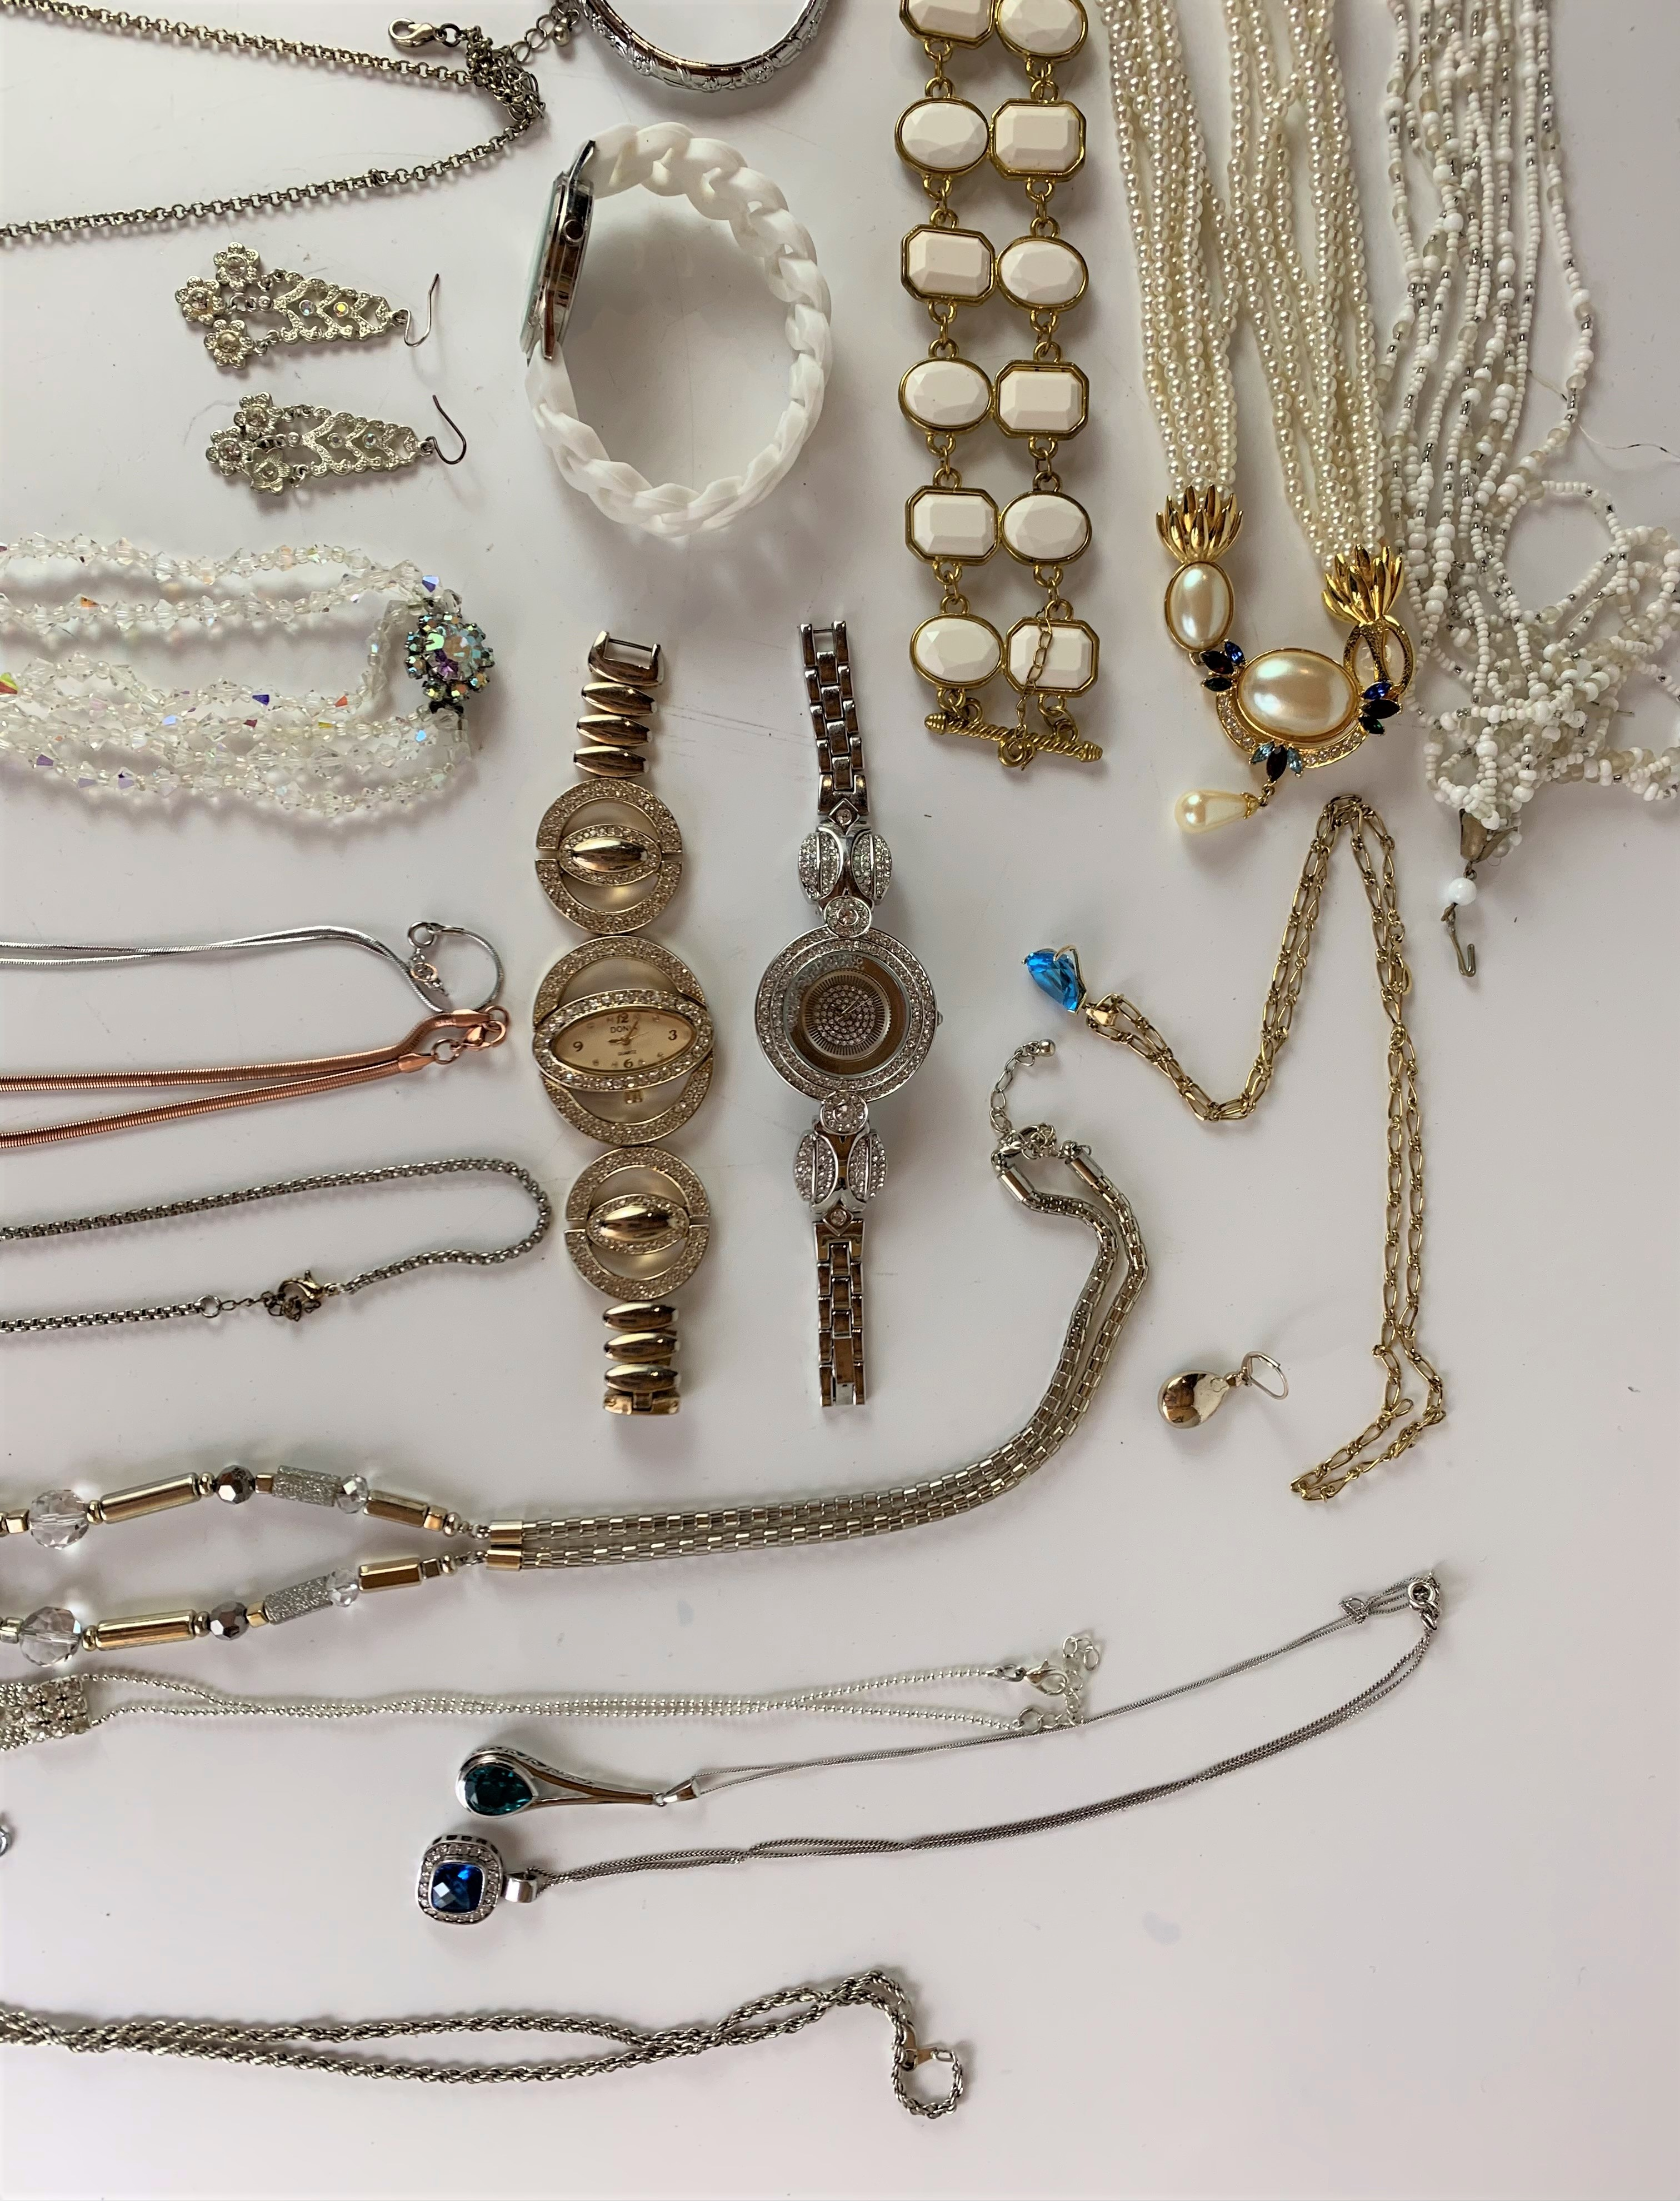 Large bag of assorted dress jewellery including necklaces, bracelets, earrings, etc. - Image 5 of 6